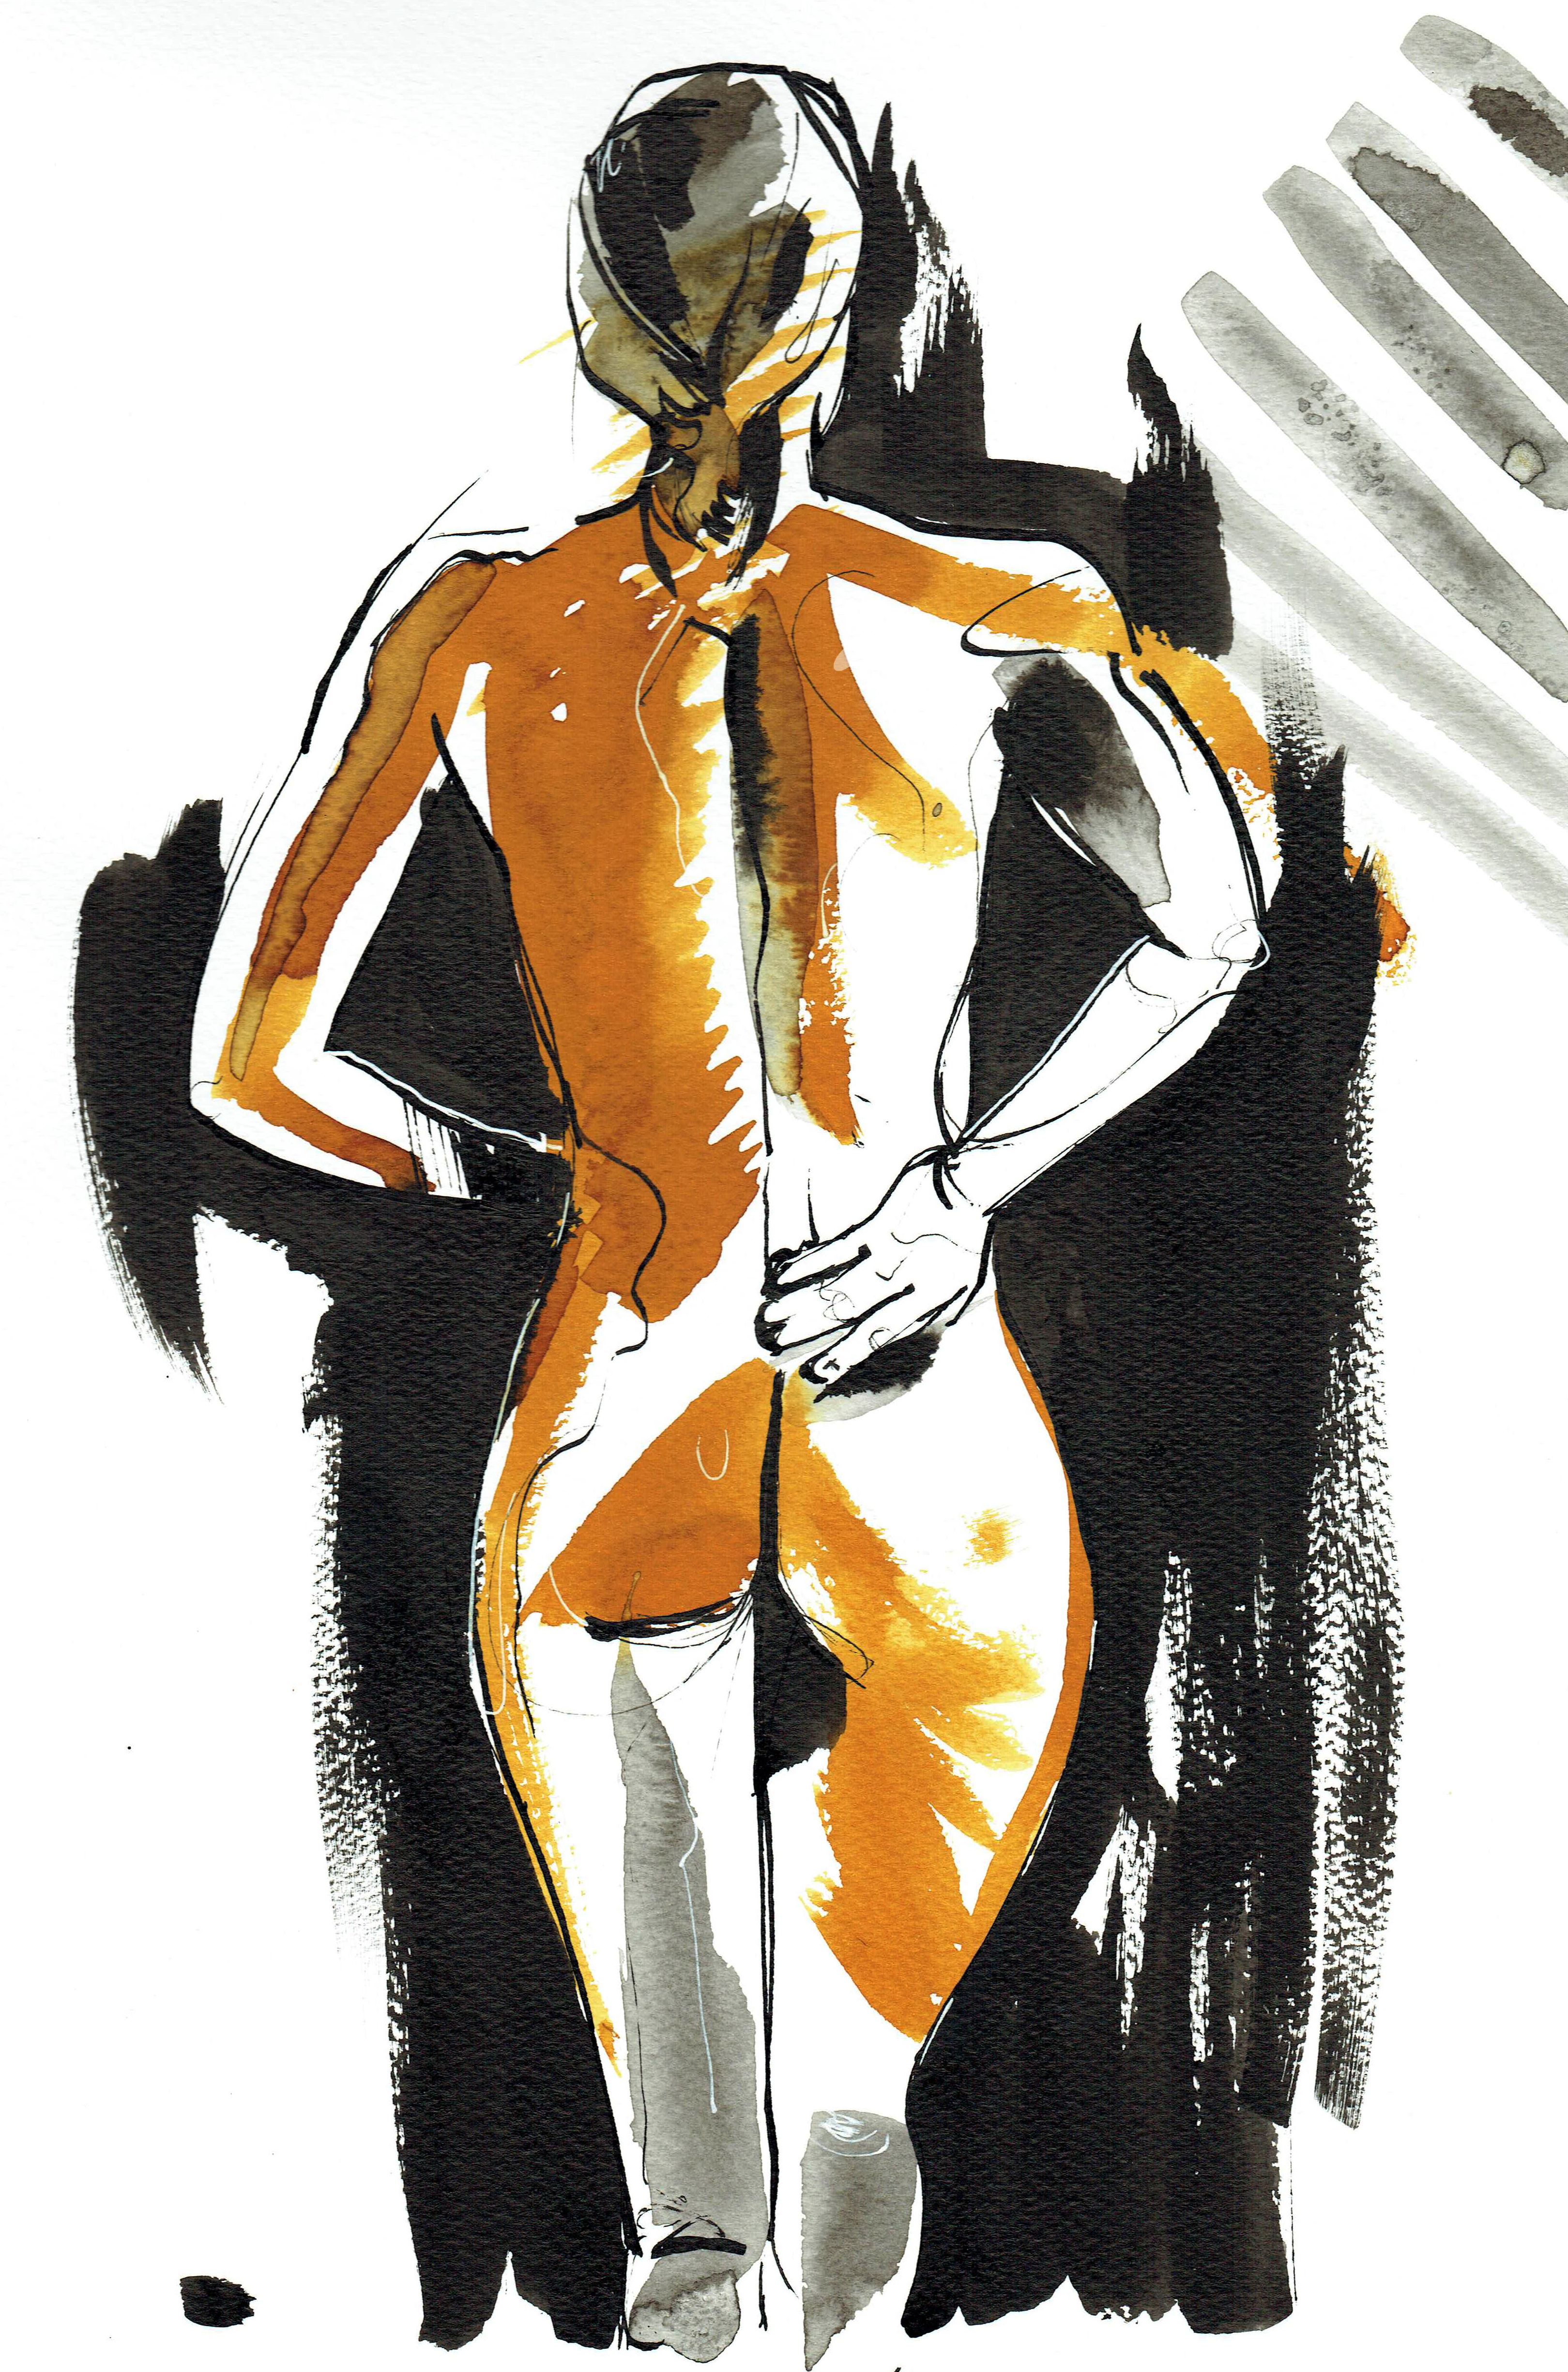 Yellowlifedrawing